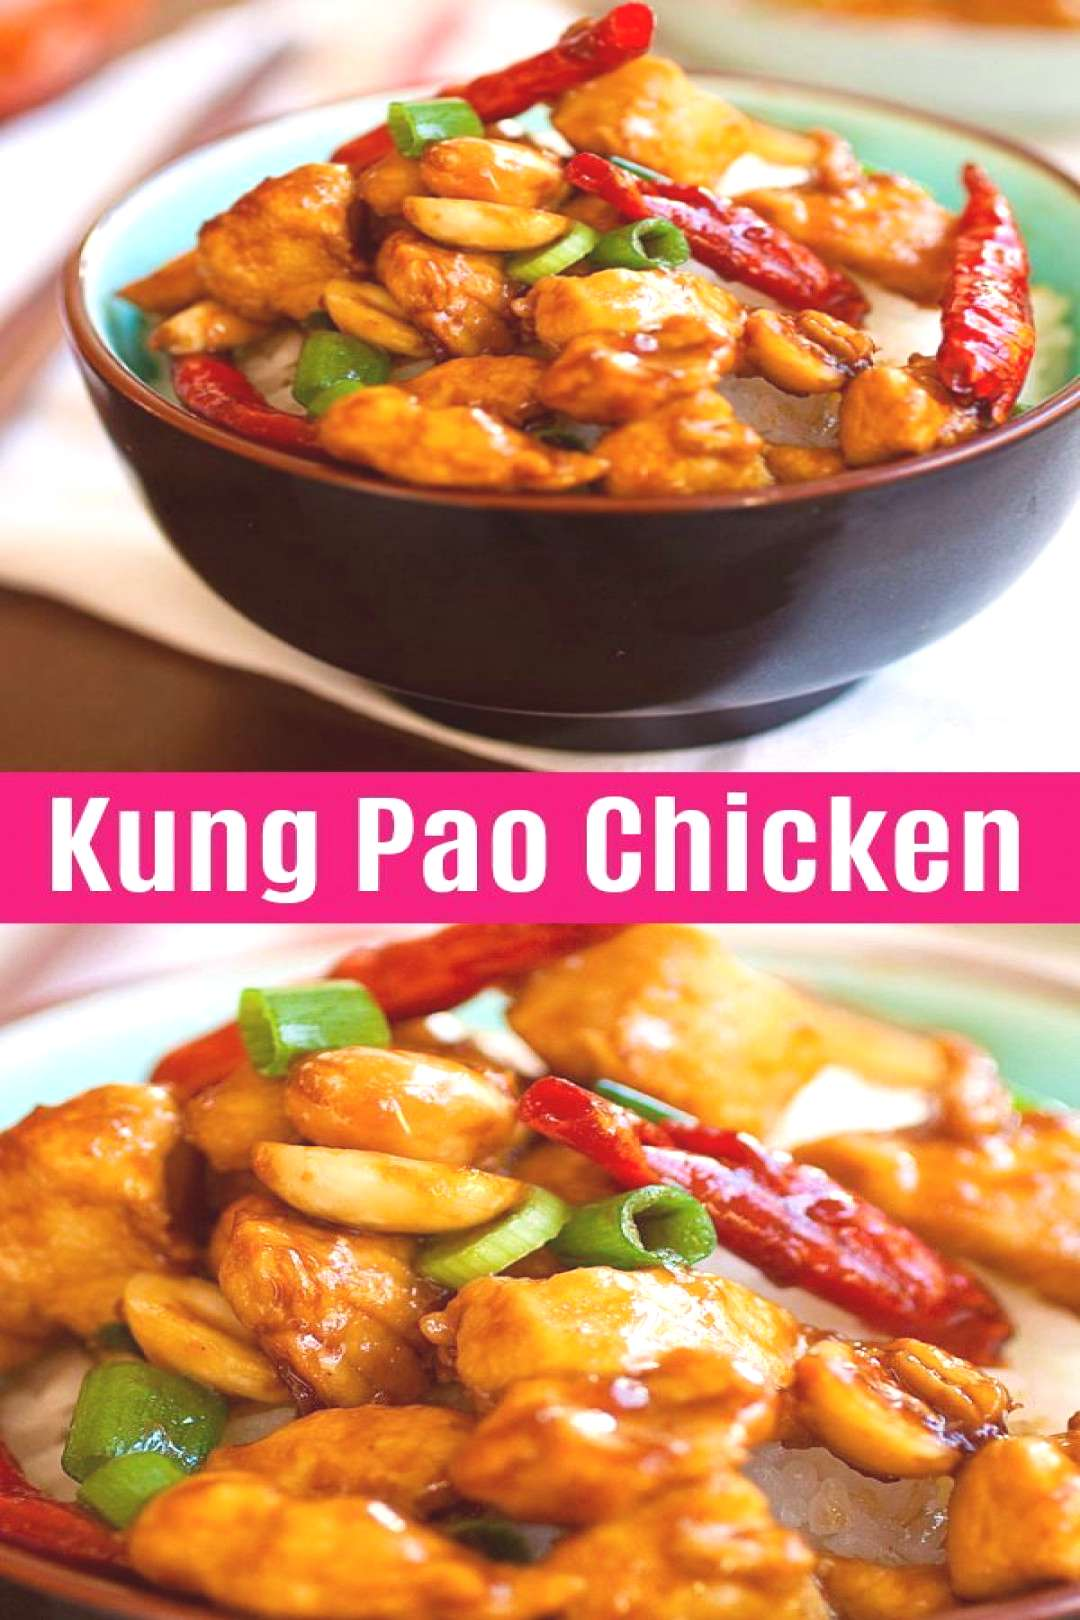 Kung Pao Chicken Kung Pao Chicken is a Chinese takeout classic loaded with spicy chicken, peanuts,